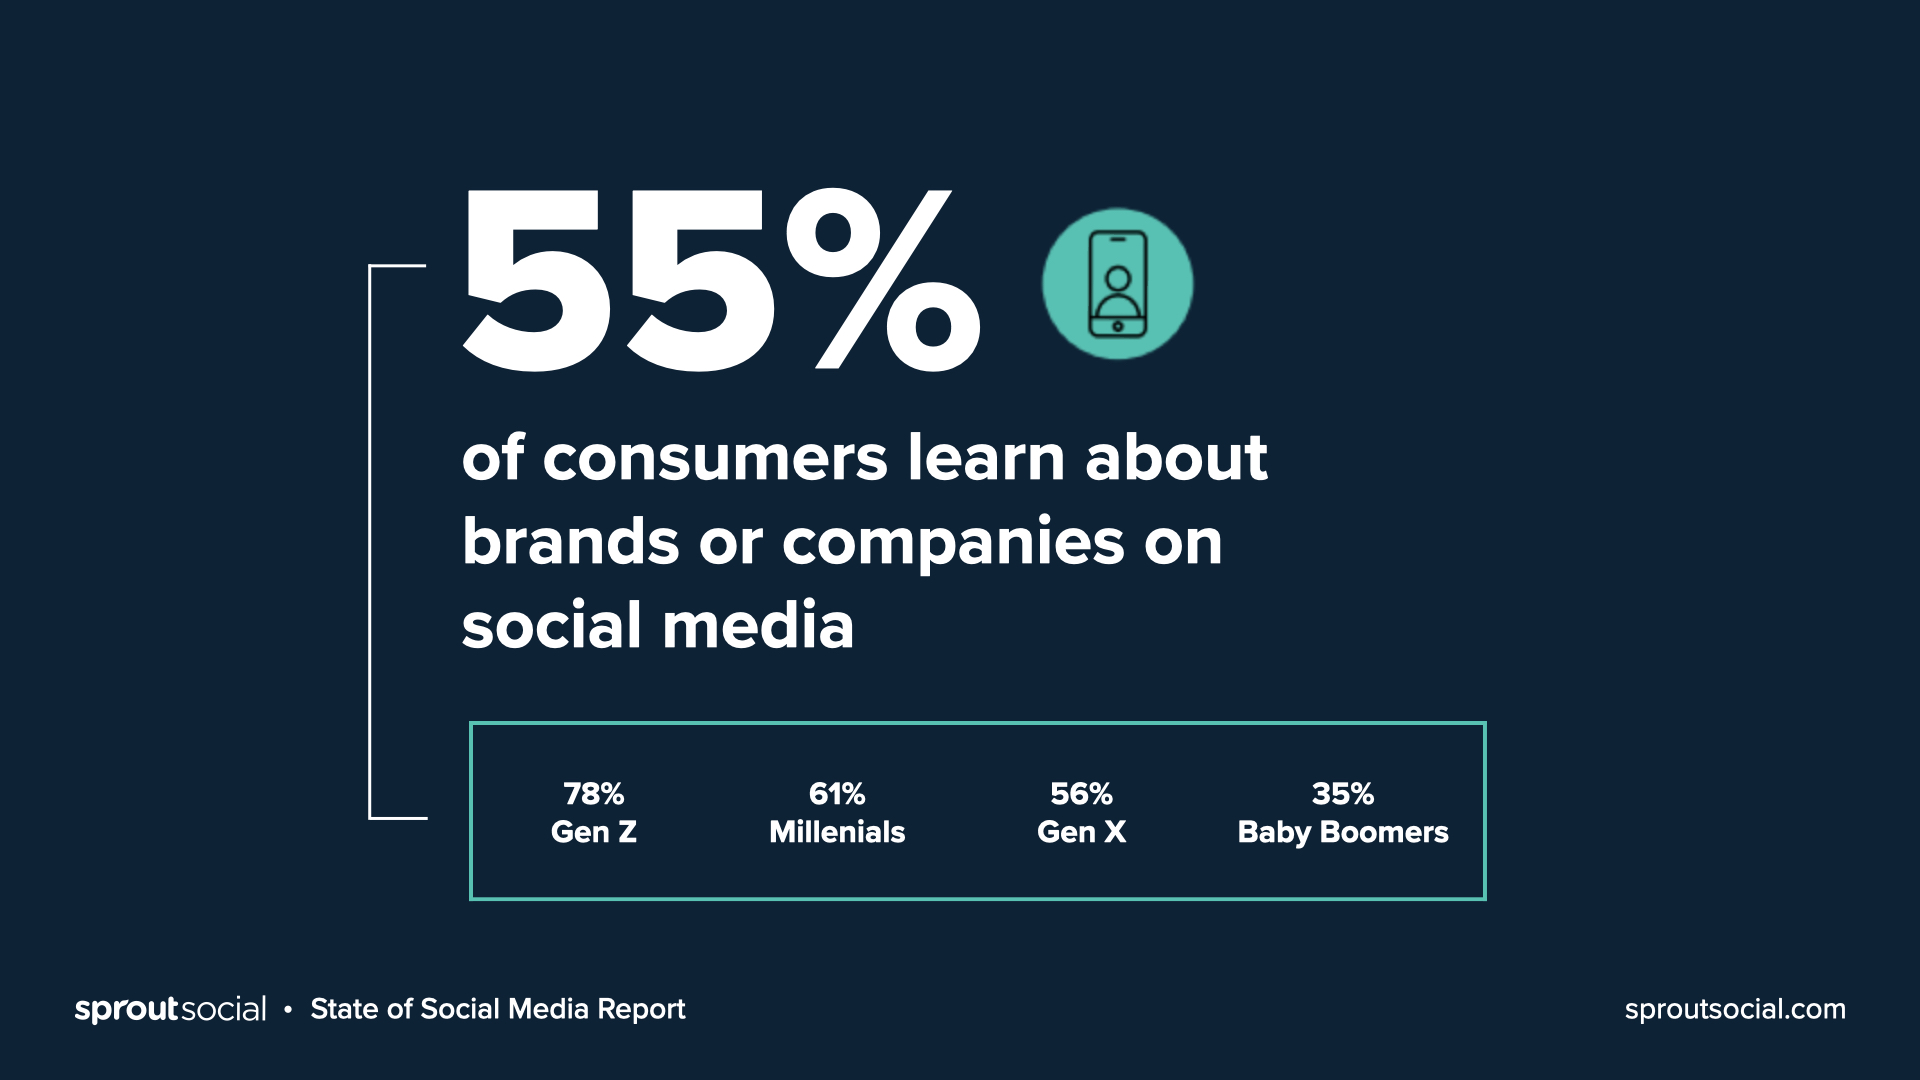 55% of consumers learn about a brand or company on social media